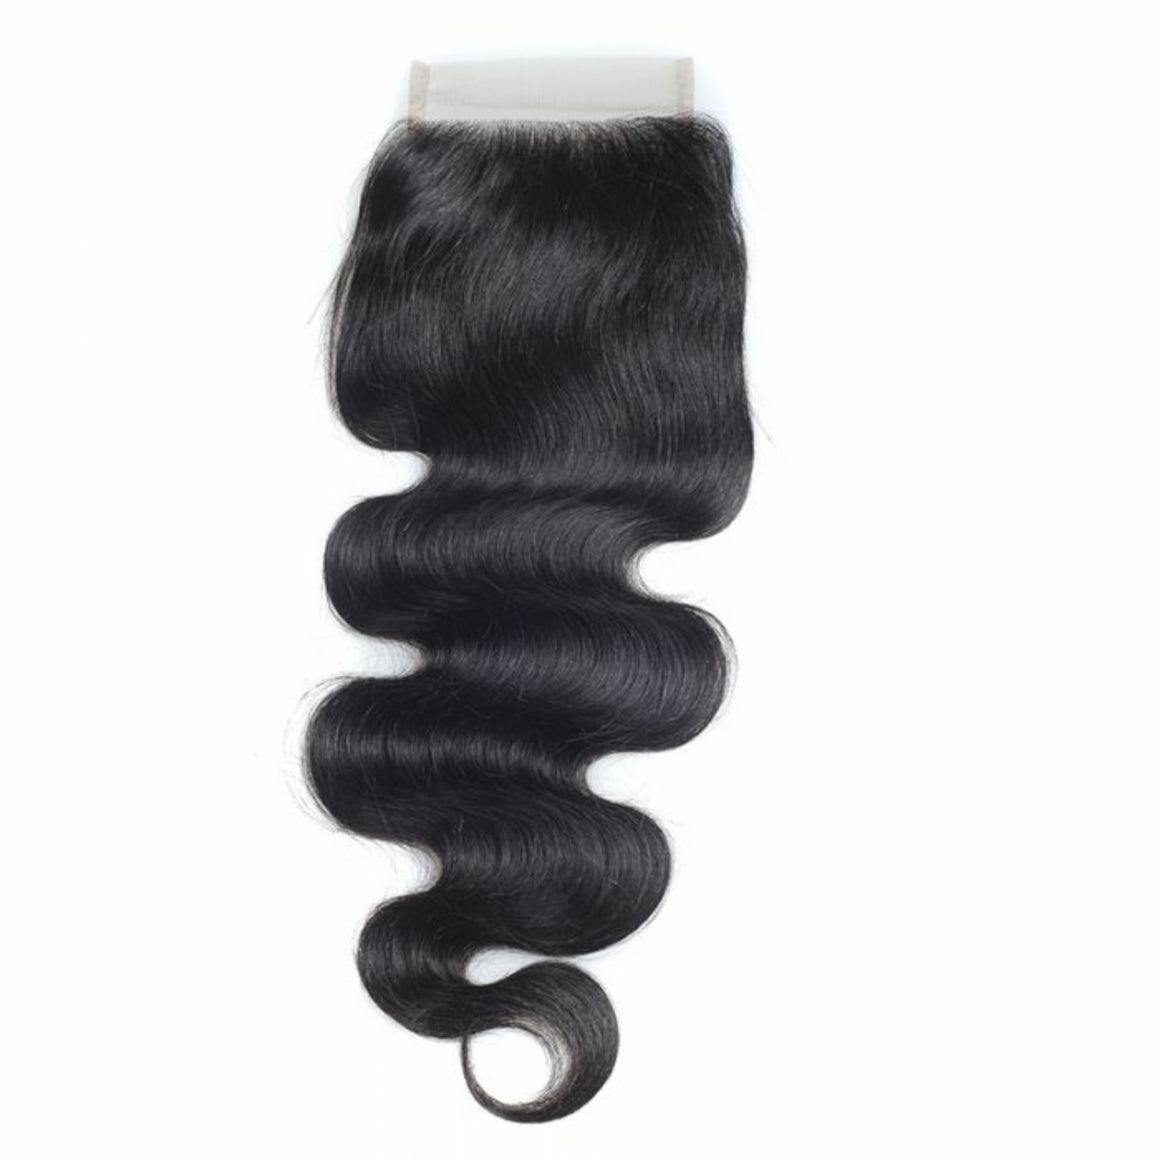 4 By 4 Silk Base Body wave Three Part, Middle Part, and Free Part closure, pre-plucked, with baby hairs - mslhair